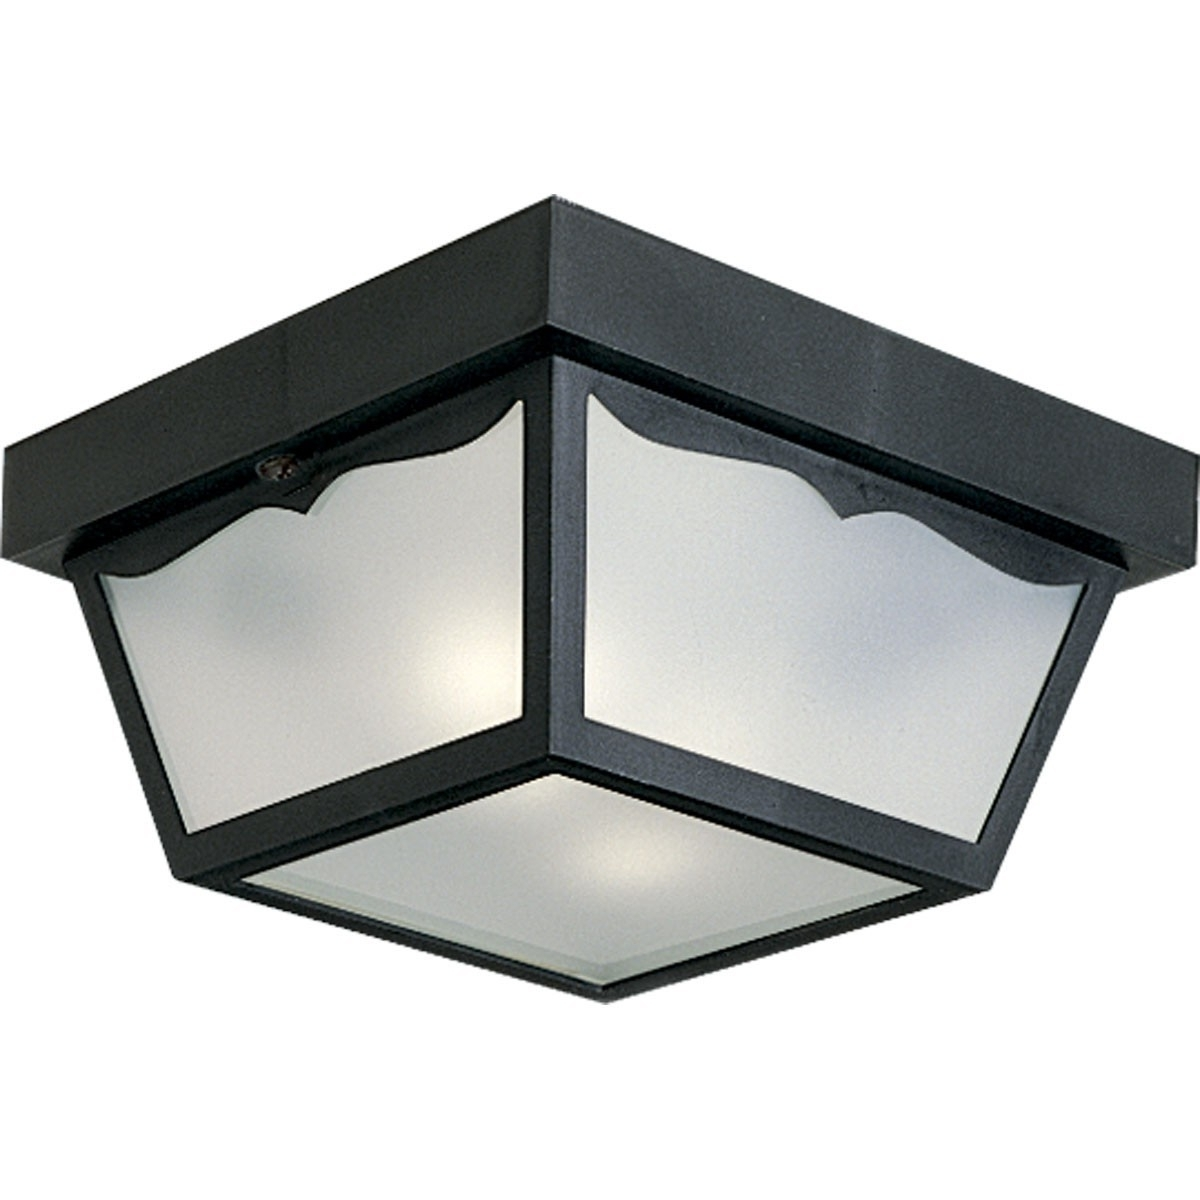 Most Recent 60w Outdoor Flush Mount Non Metallic Ceiling Light – Progress Regarding Outdoor Ceiling Lighting Fixtures (View 2 of 20)